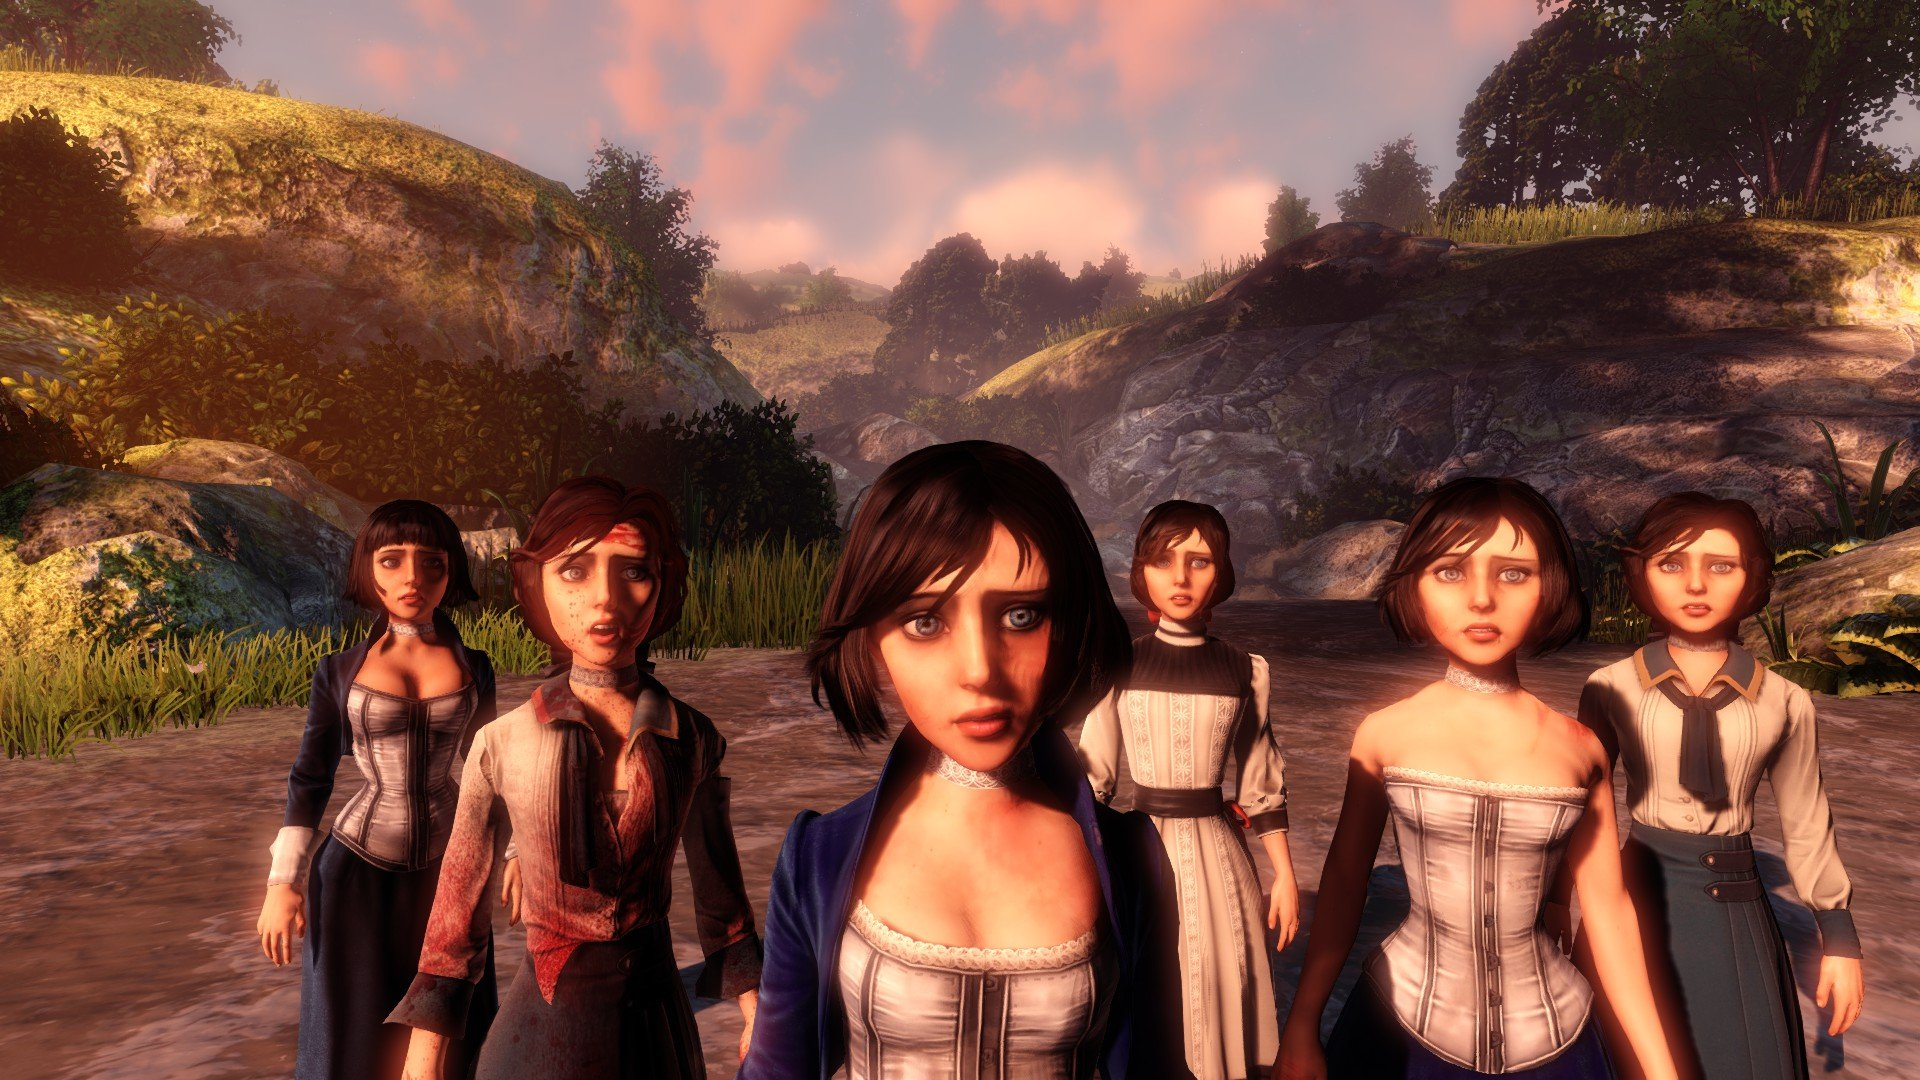 bioshock-infinite-ending-drowningbioshock-infinites-ending-explained-and-what-we-think-about-it-bamtwo9m